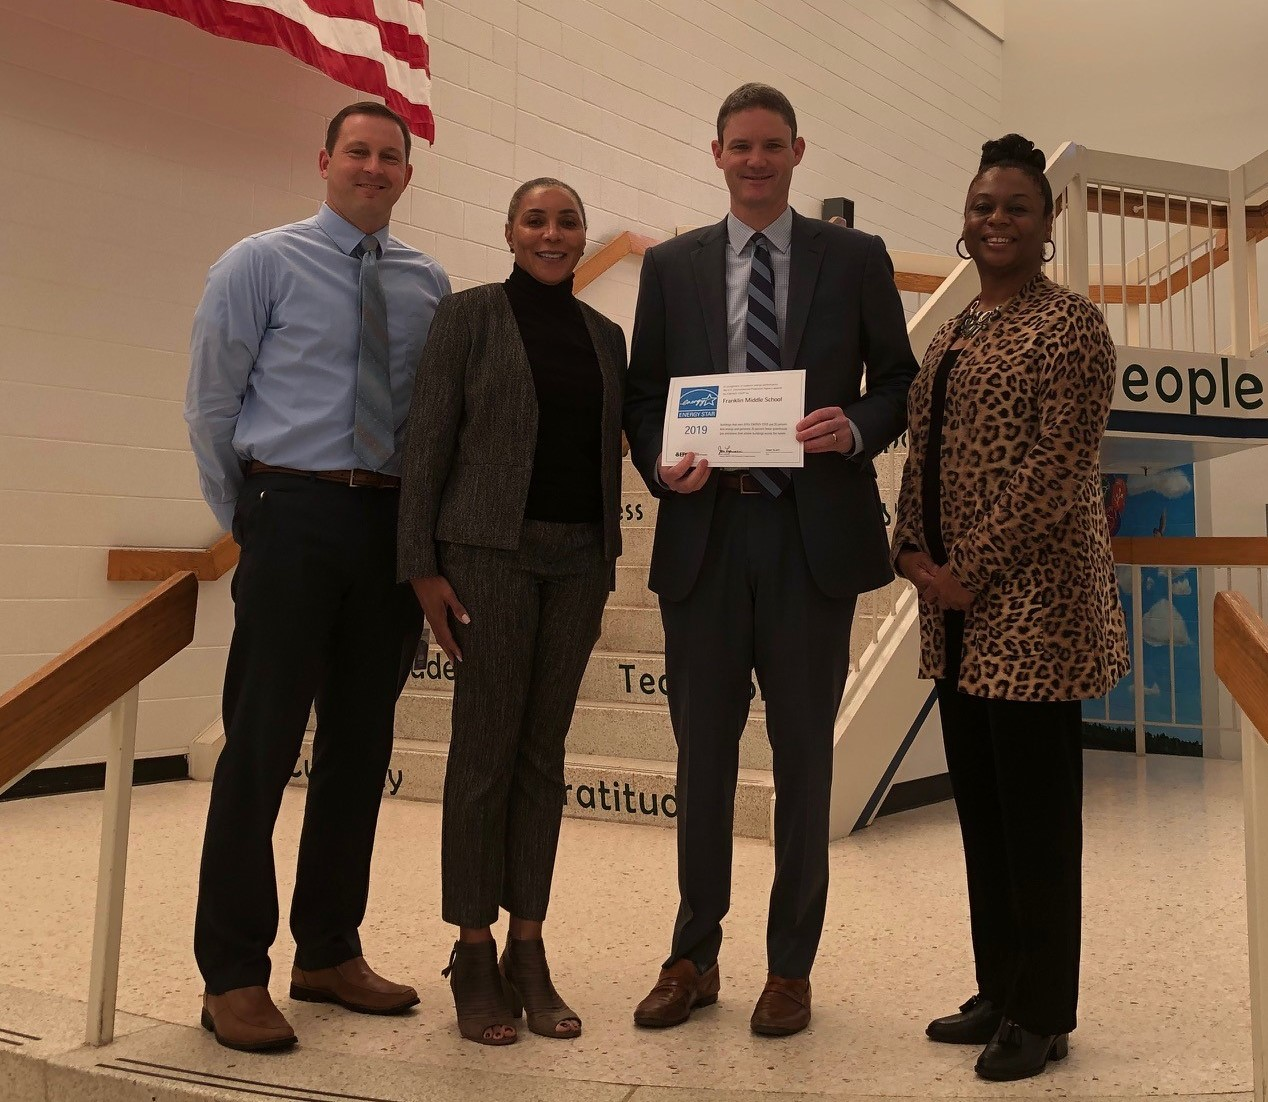 Franklin MS Admin Team with Energy Star Certification